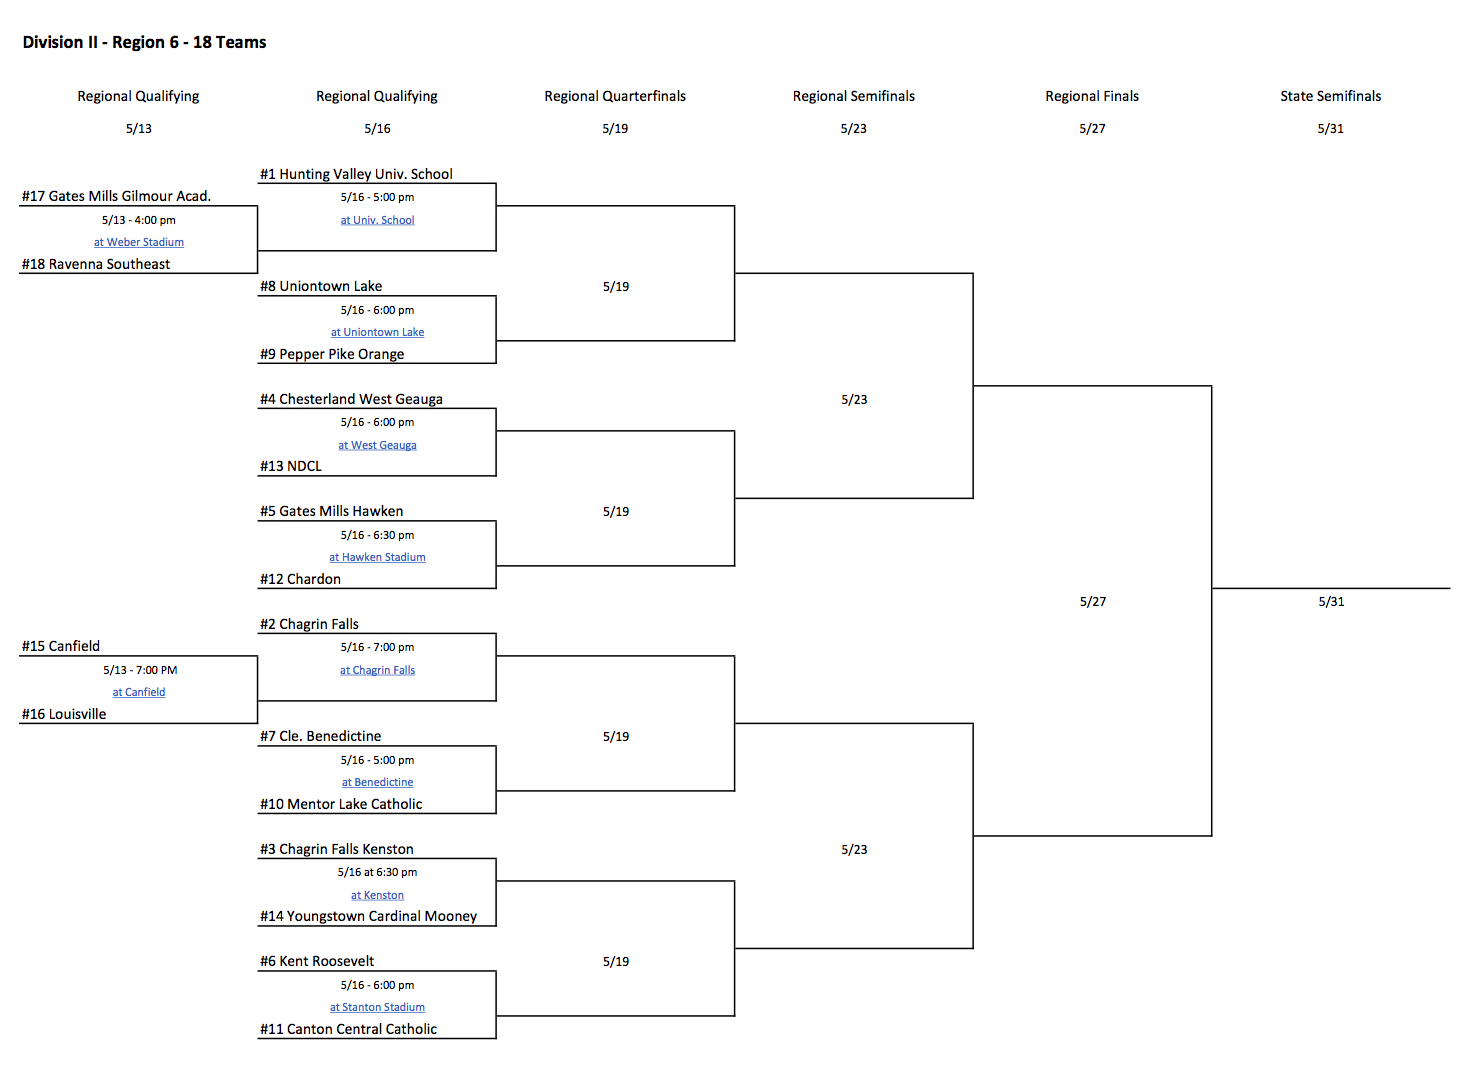 10 Team Tournament Bracket | Funny Images Gallery